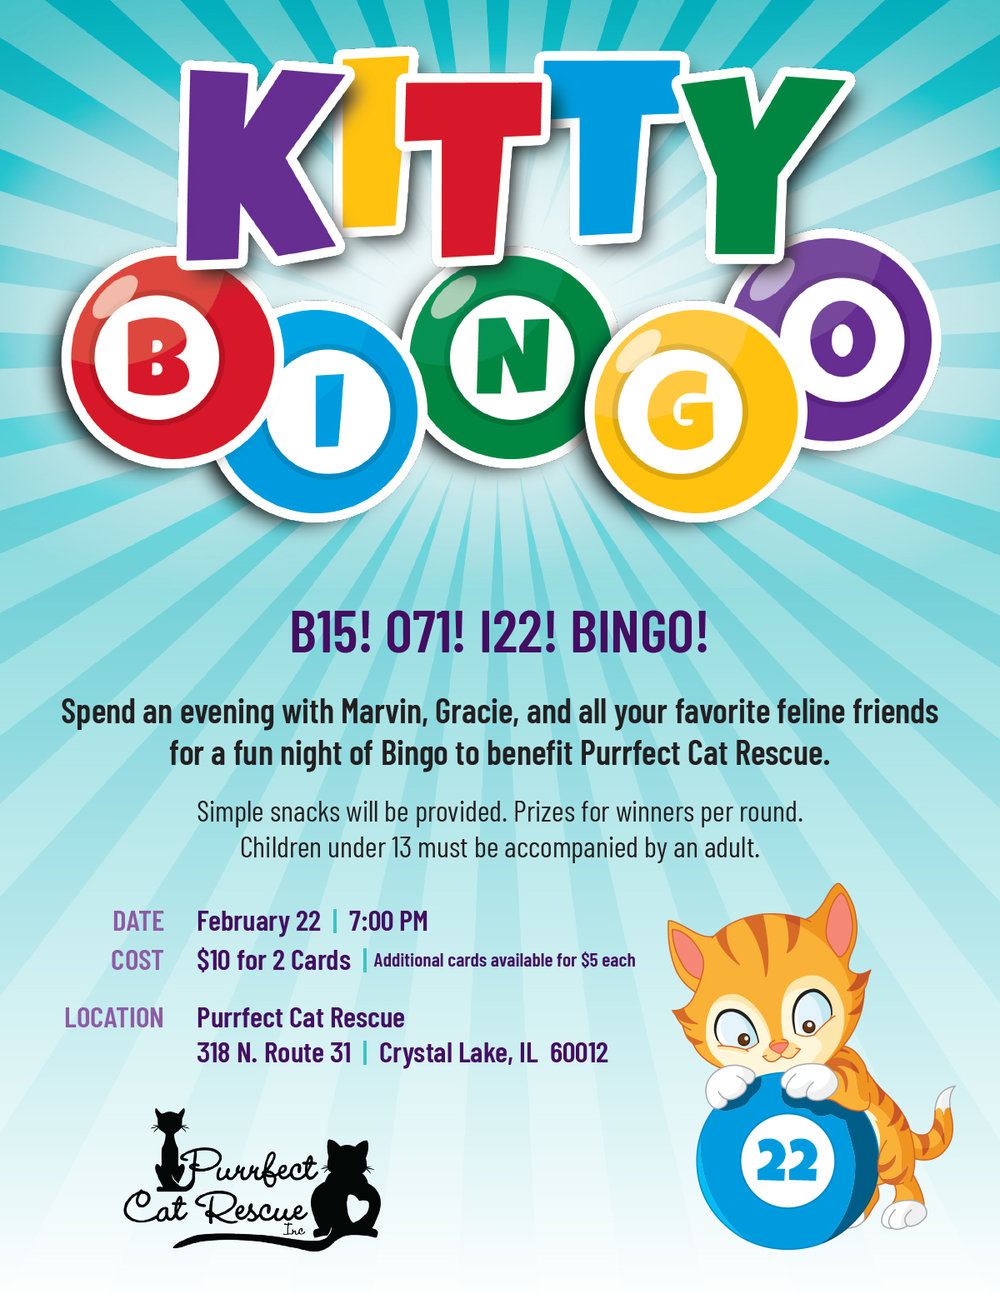 kitty_bingo_flyer_1200x1553.jpg